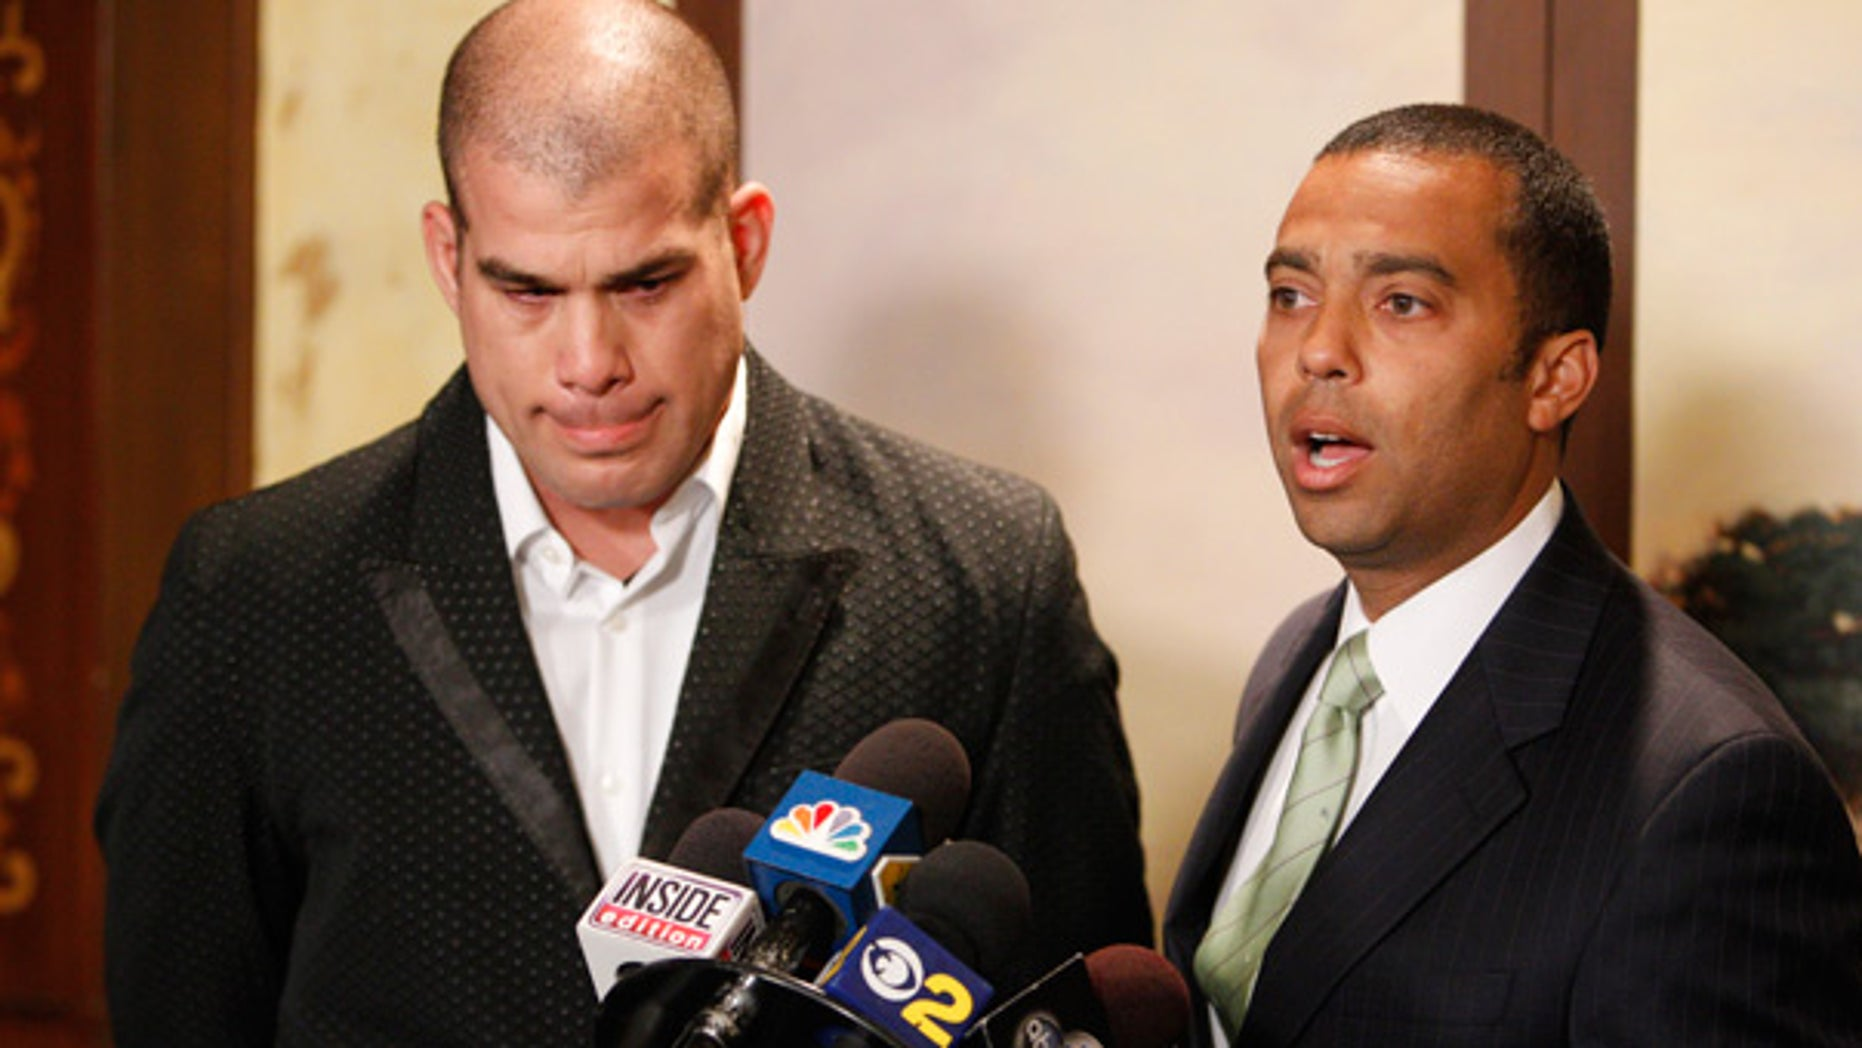 April 26: Former UFC champion Tito Ortiz listens as his attorney Chip Matthews speaks at the Firenze Osteria restaurant in North Hollywood.